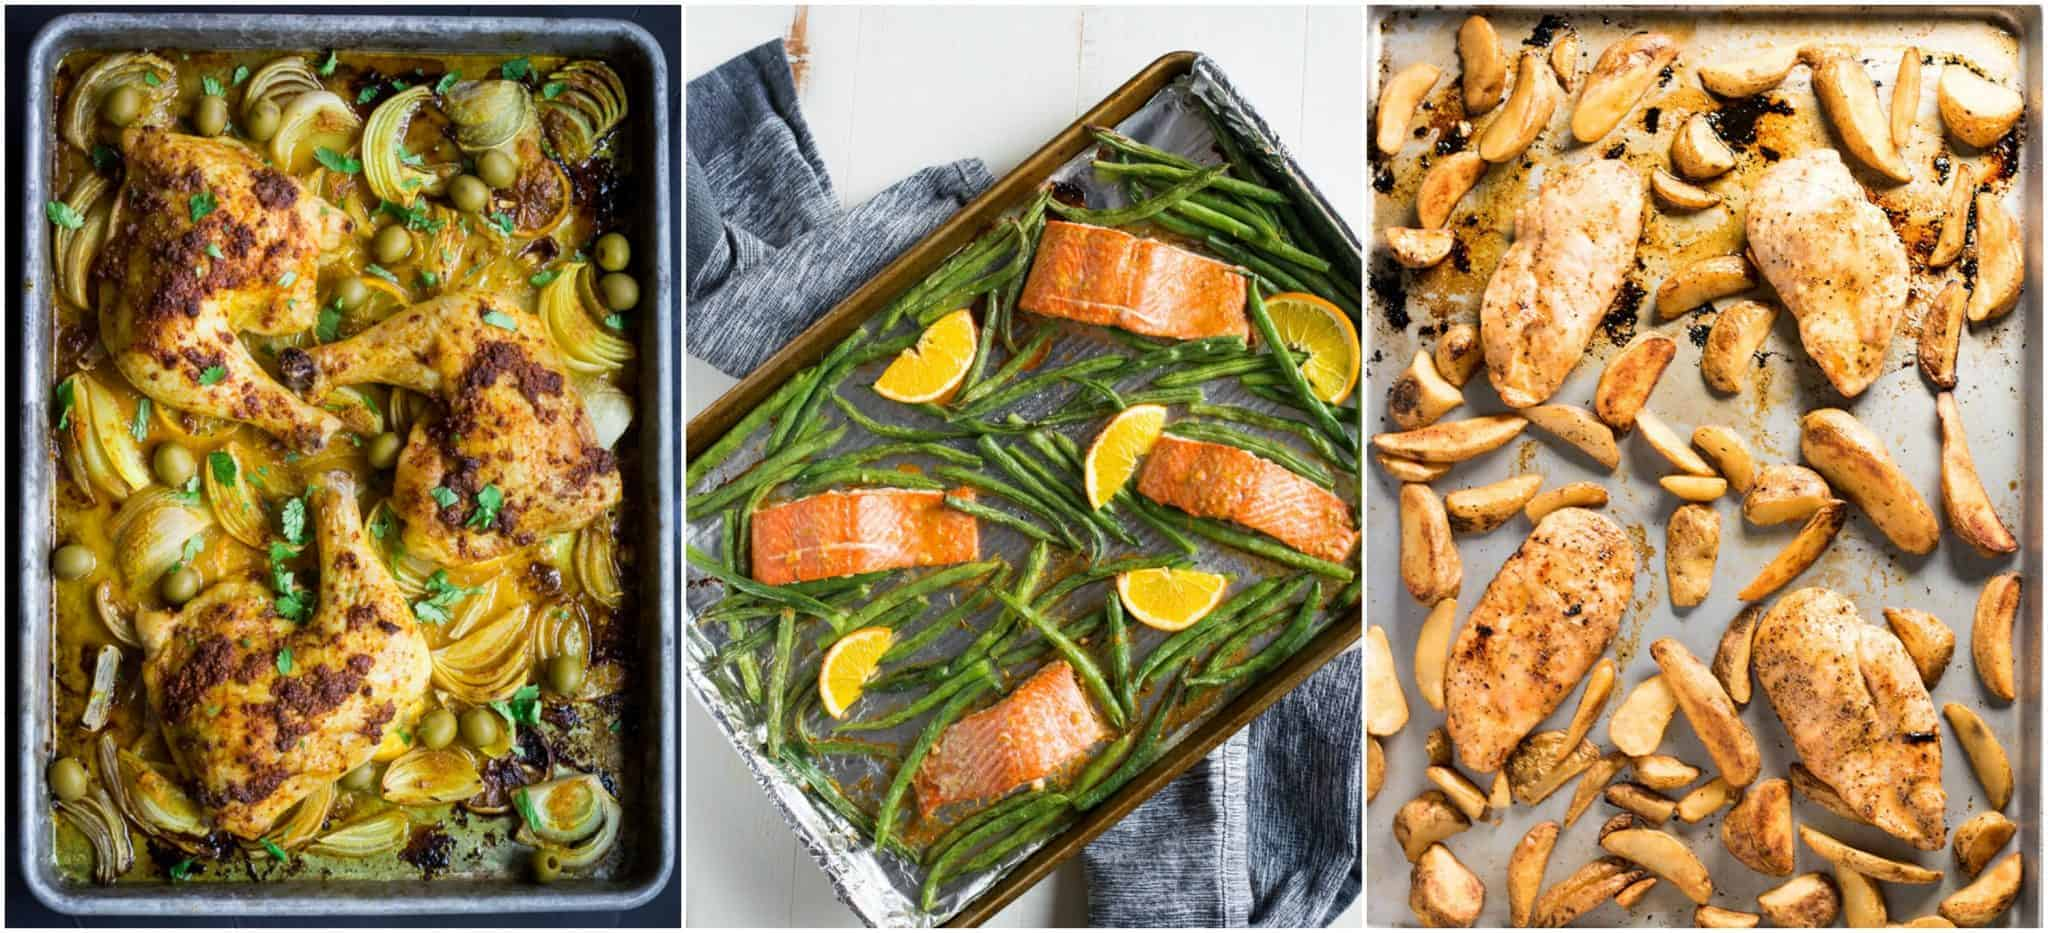 sheet pan dinners ideas and recipes